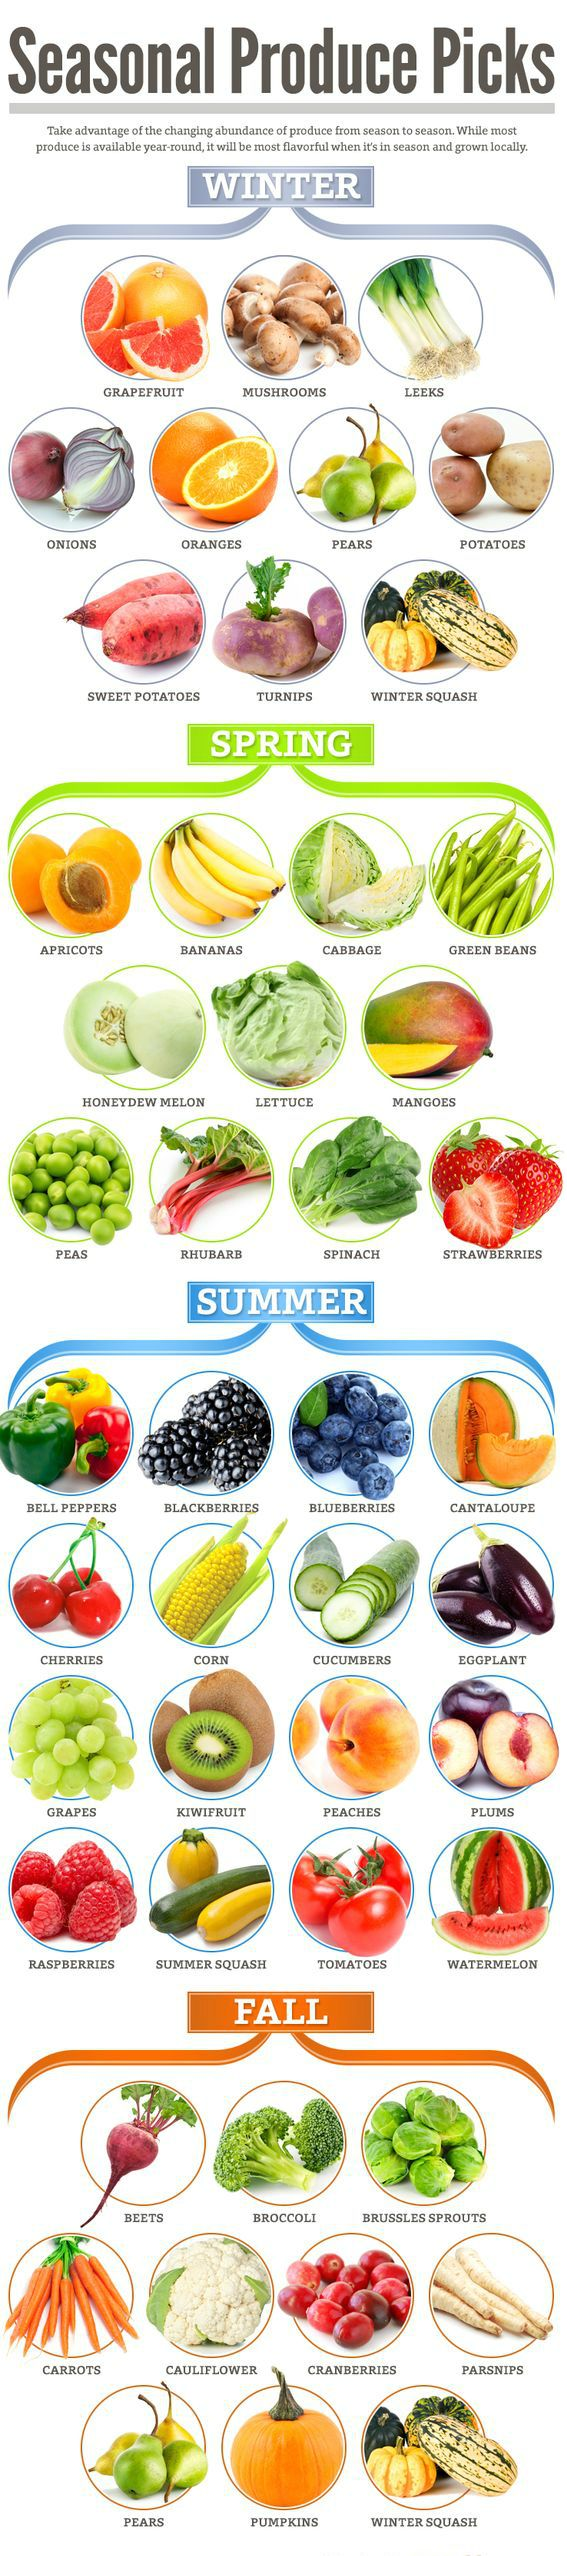 This is a handy infographic for when fruits & vegetables are in season for losing weight   #weightloss #loseweight #healthydiet #flatbellyfoods #slimmingtips #DietPlan #detox